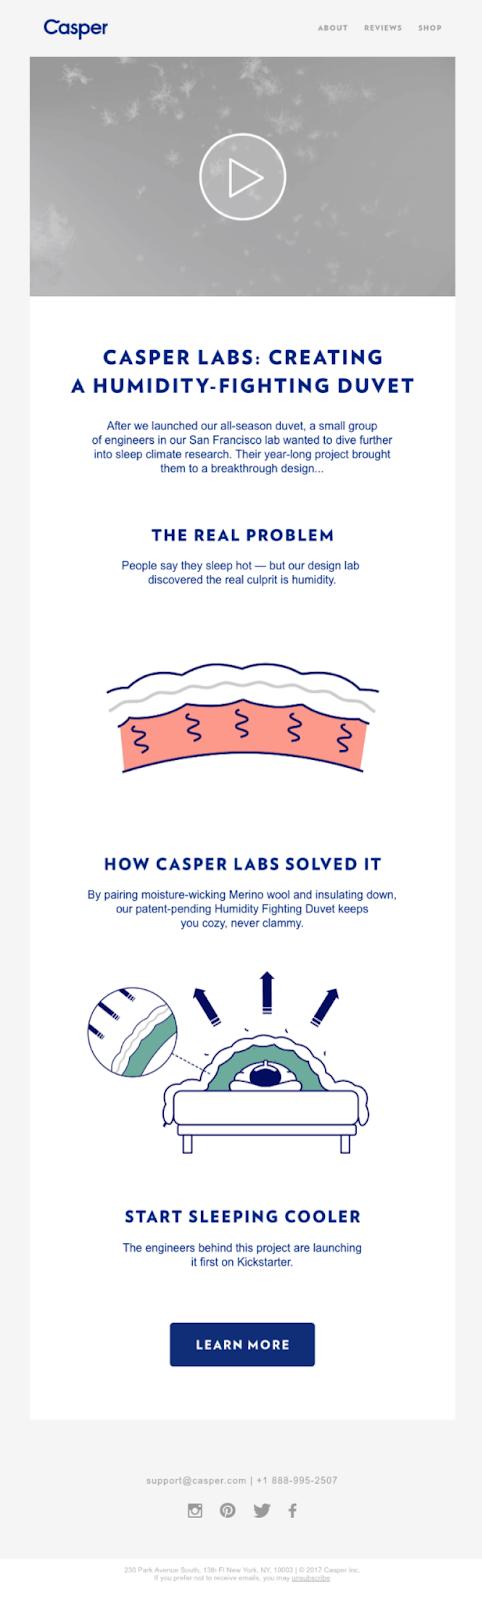 An email from Casper labs with laid out text, visuals, and one main CTA button at the bottom that says 'Learn More'.